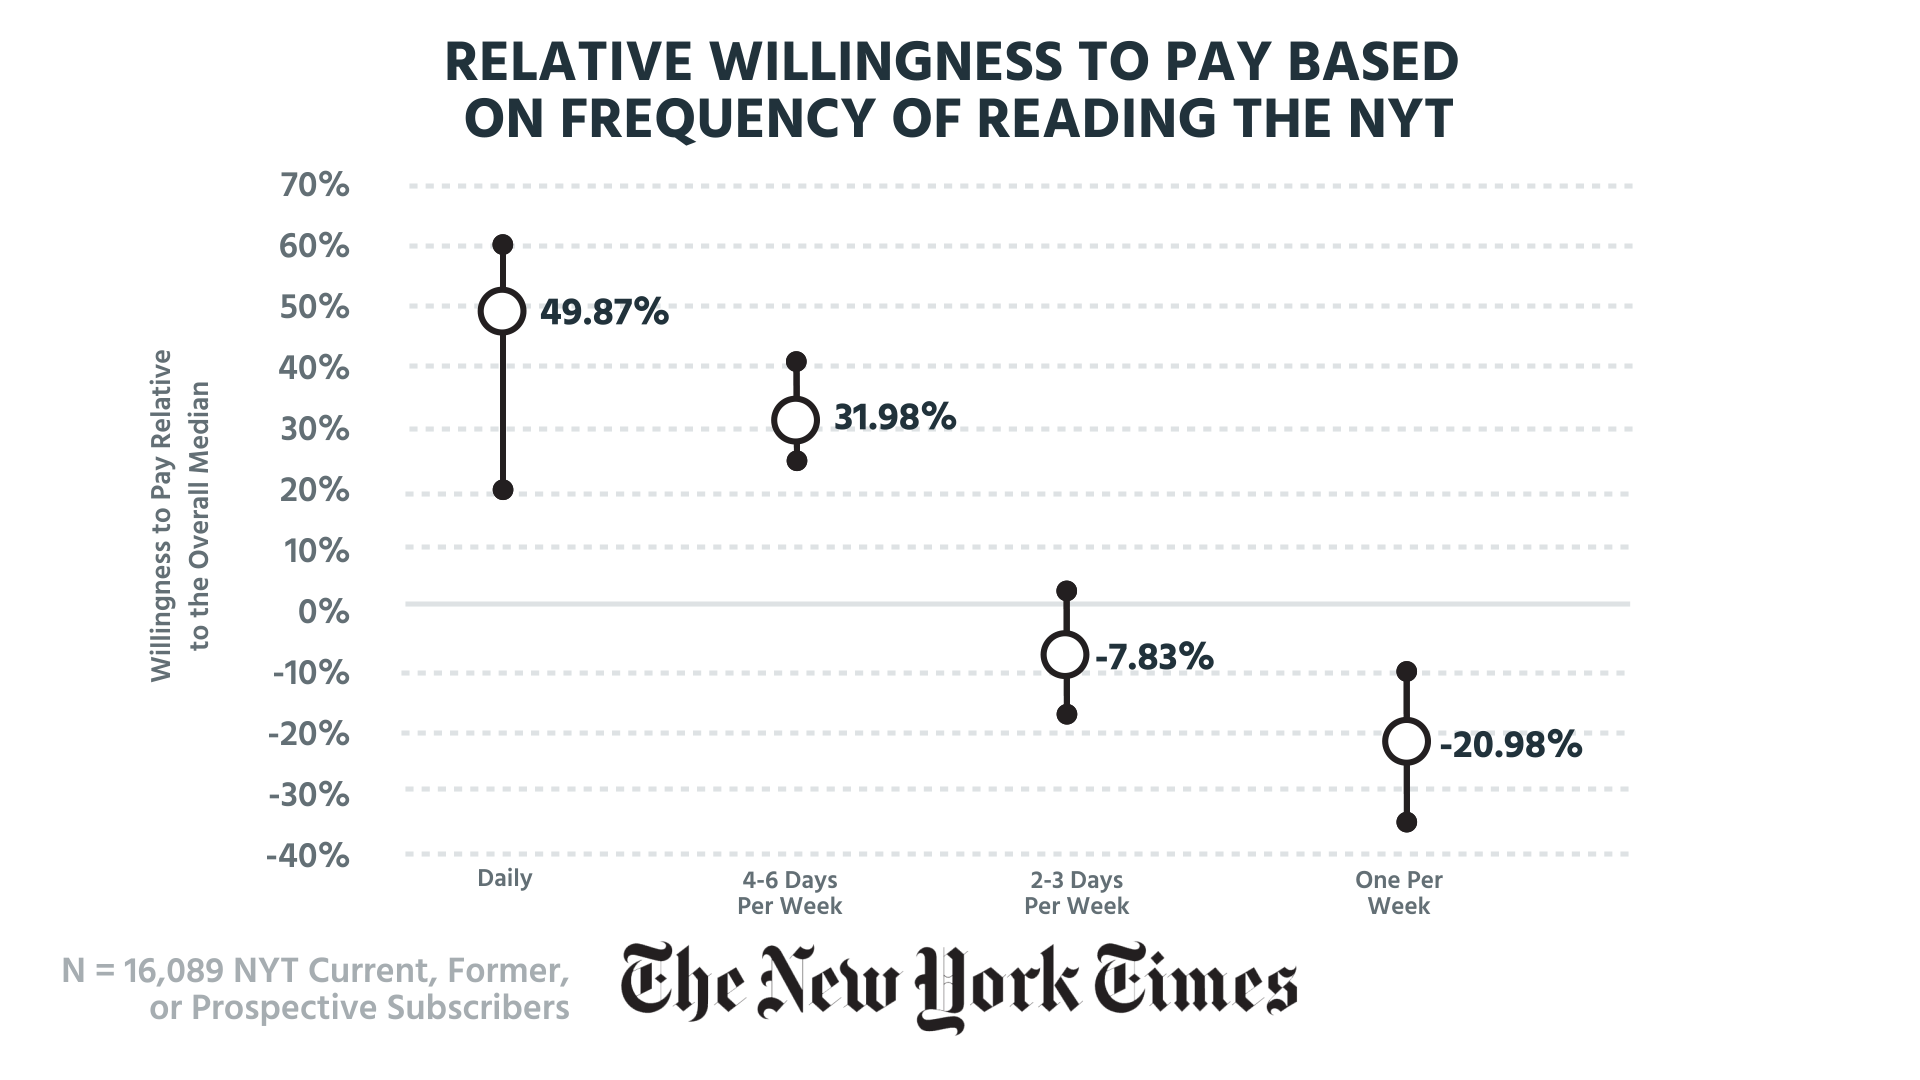 Frequency Reading NYT